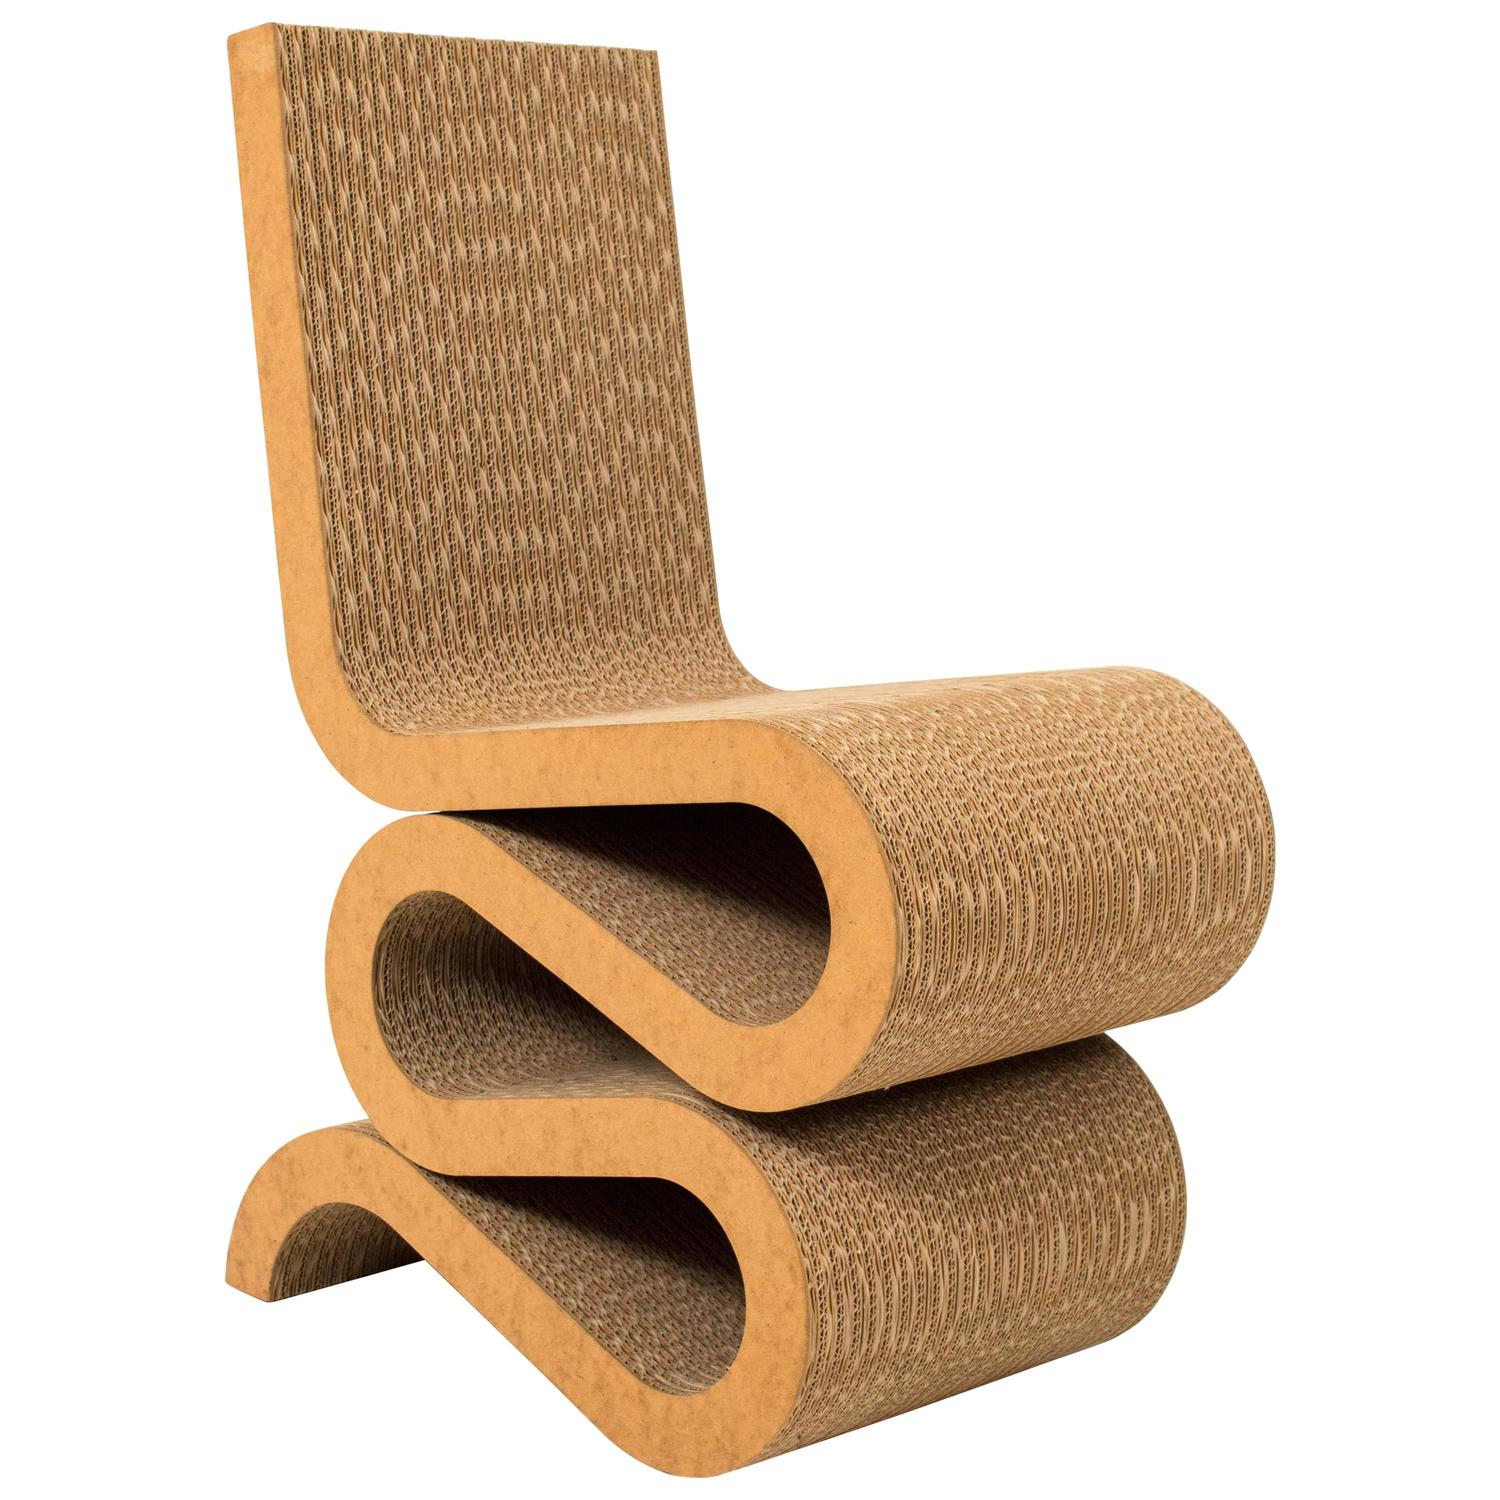 frank gehry cardboard chair hanging mitre 10 price oscarsfurniture